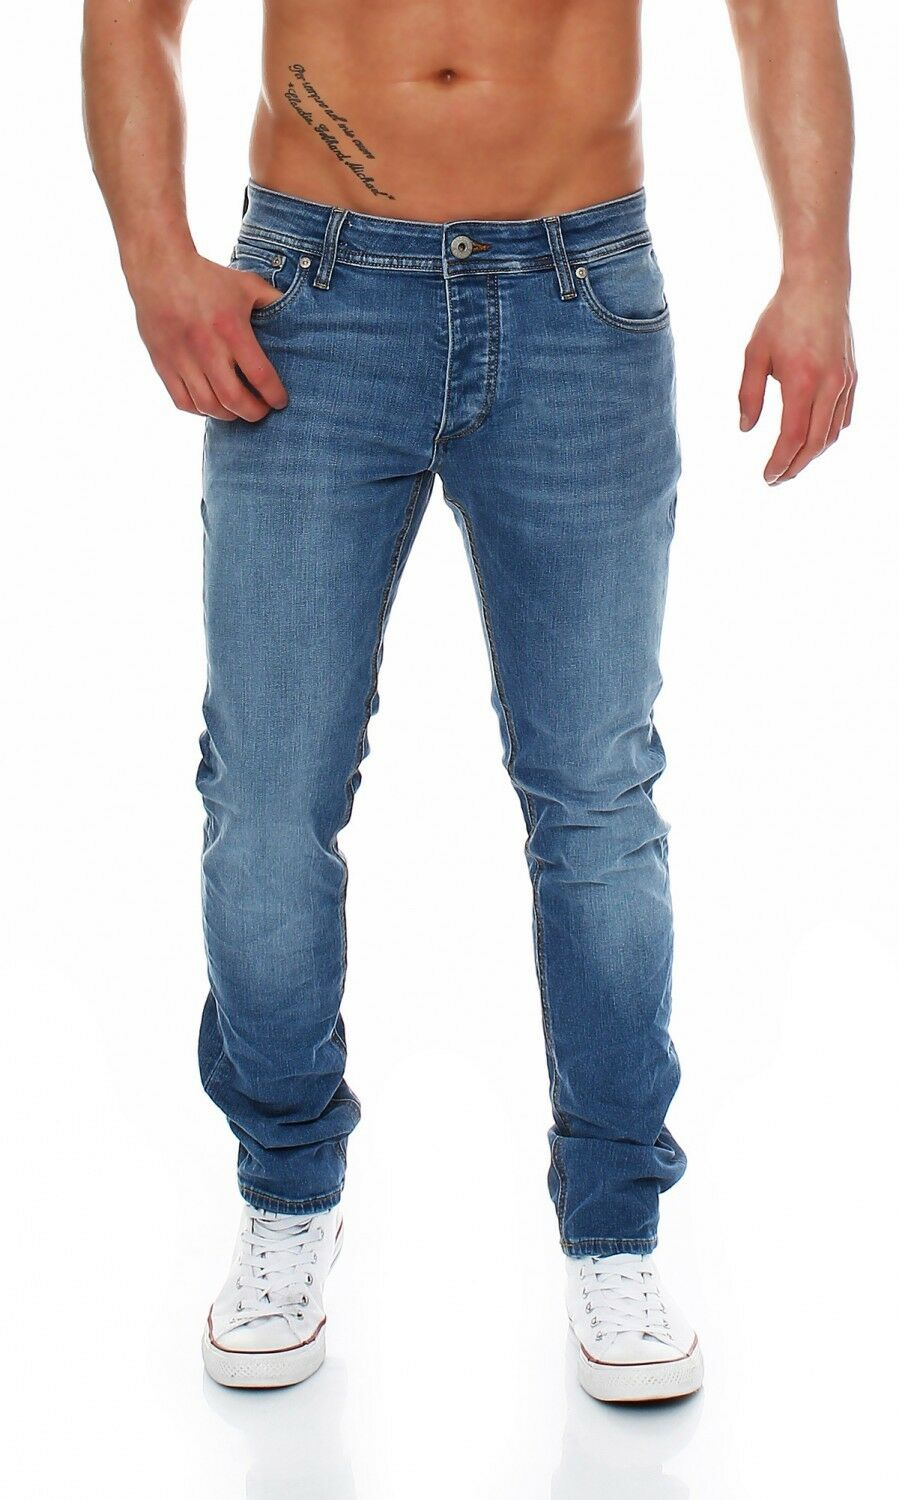 JACK and JONES - TIM ORIGINAL - AM420 Mittelblau - Herren Jeans Hose Slim Fit